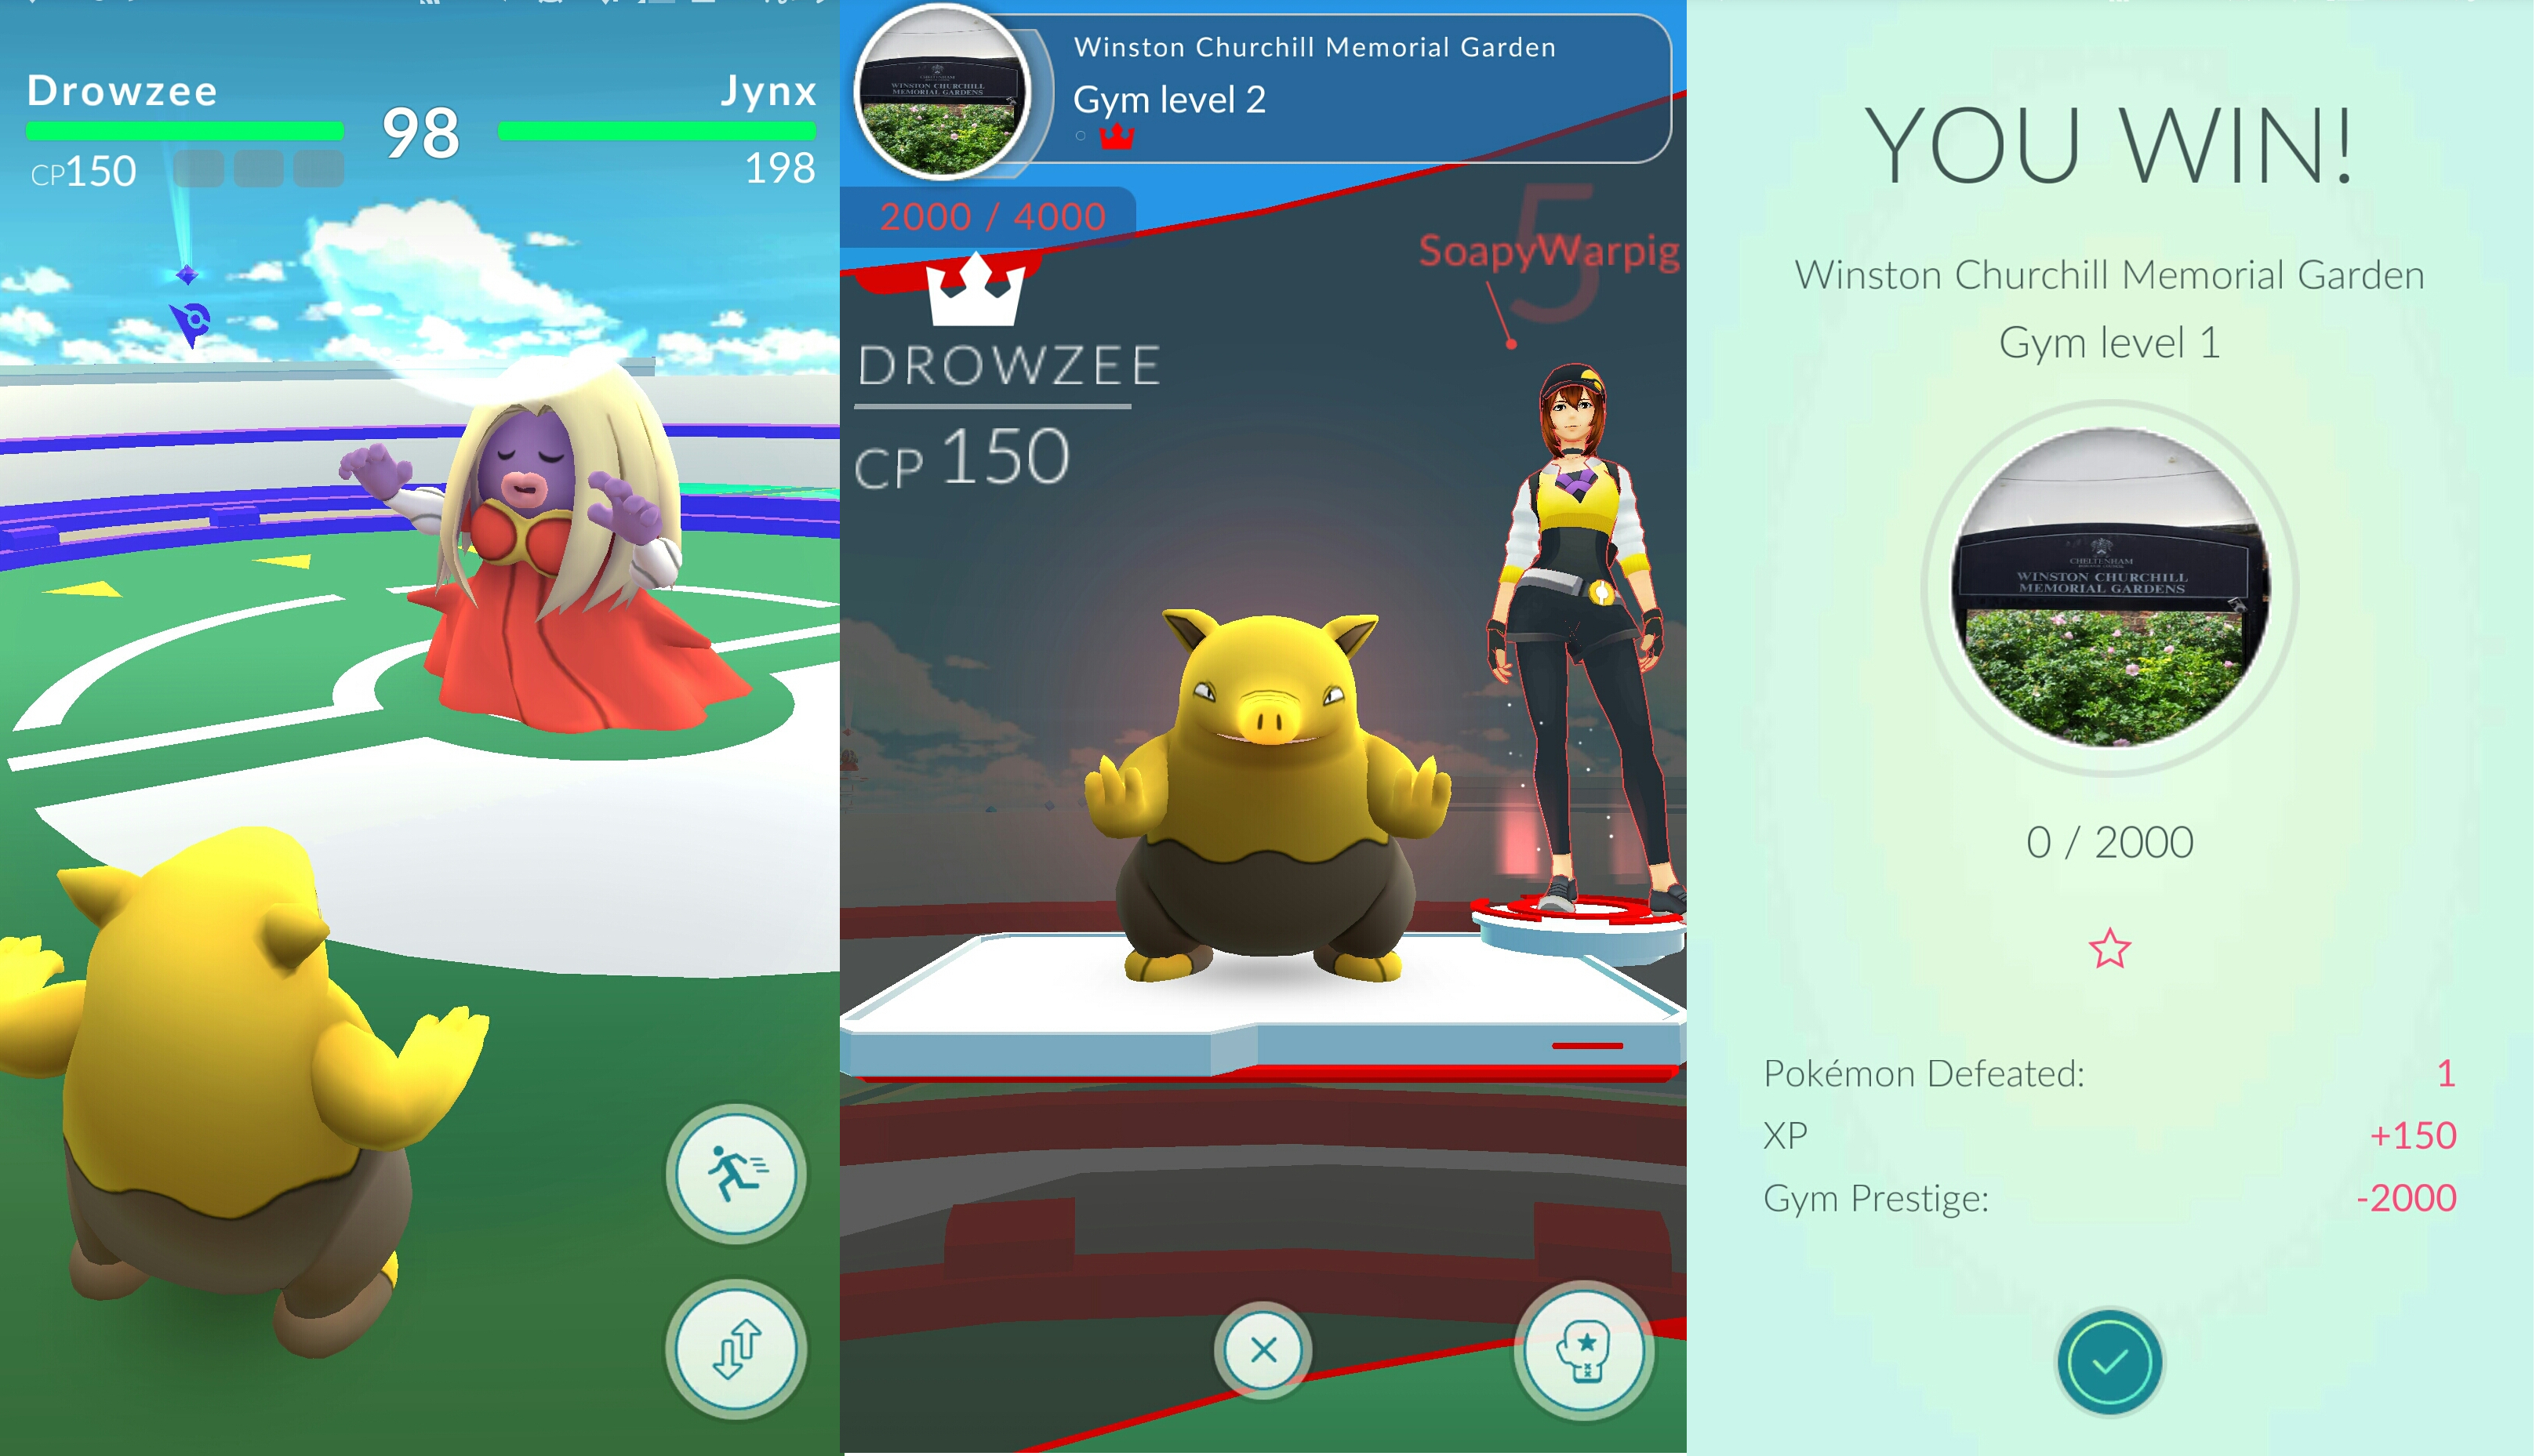 HACK TOOL POKEMON GO www pokemongo hackonline com   Home Logistics